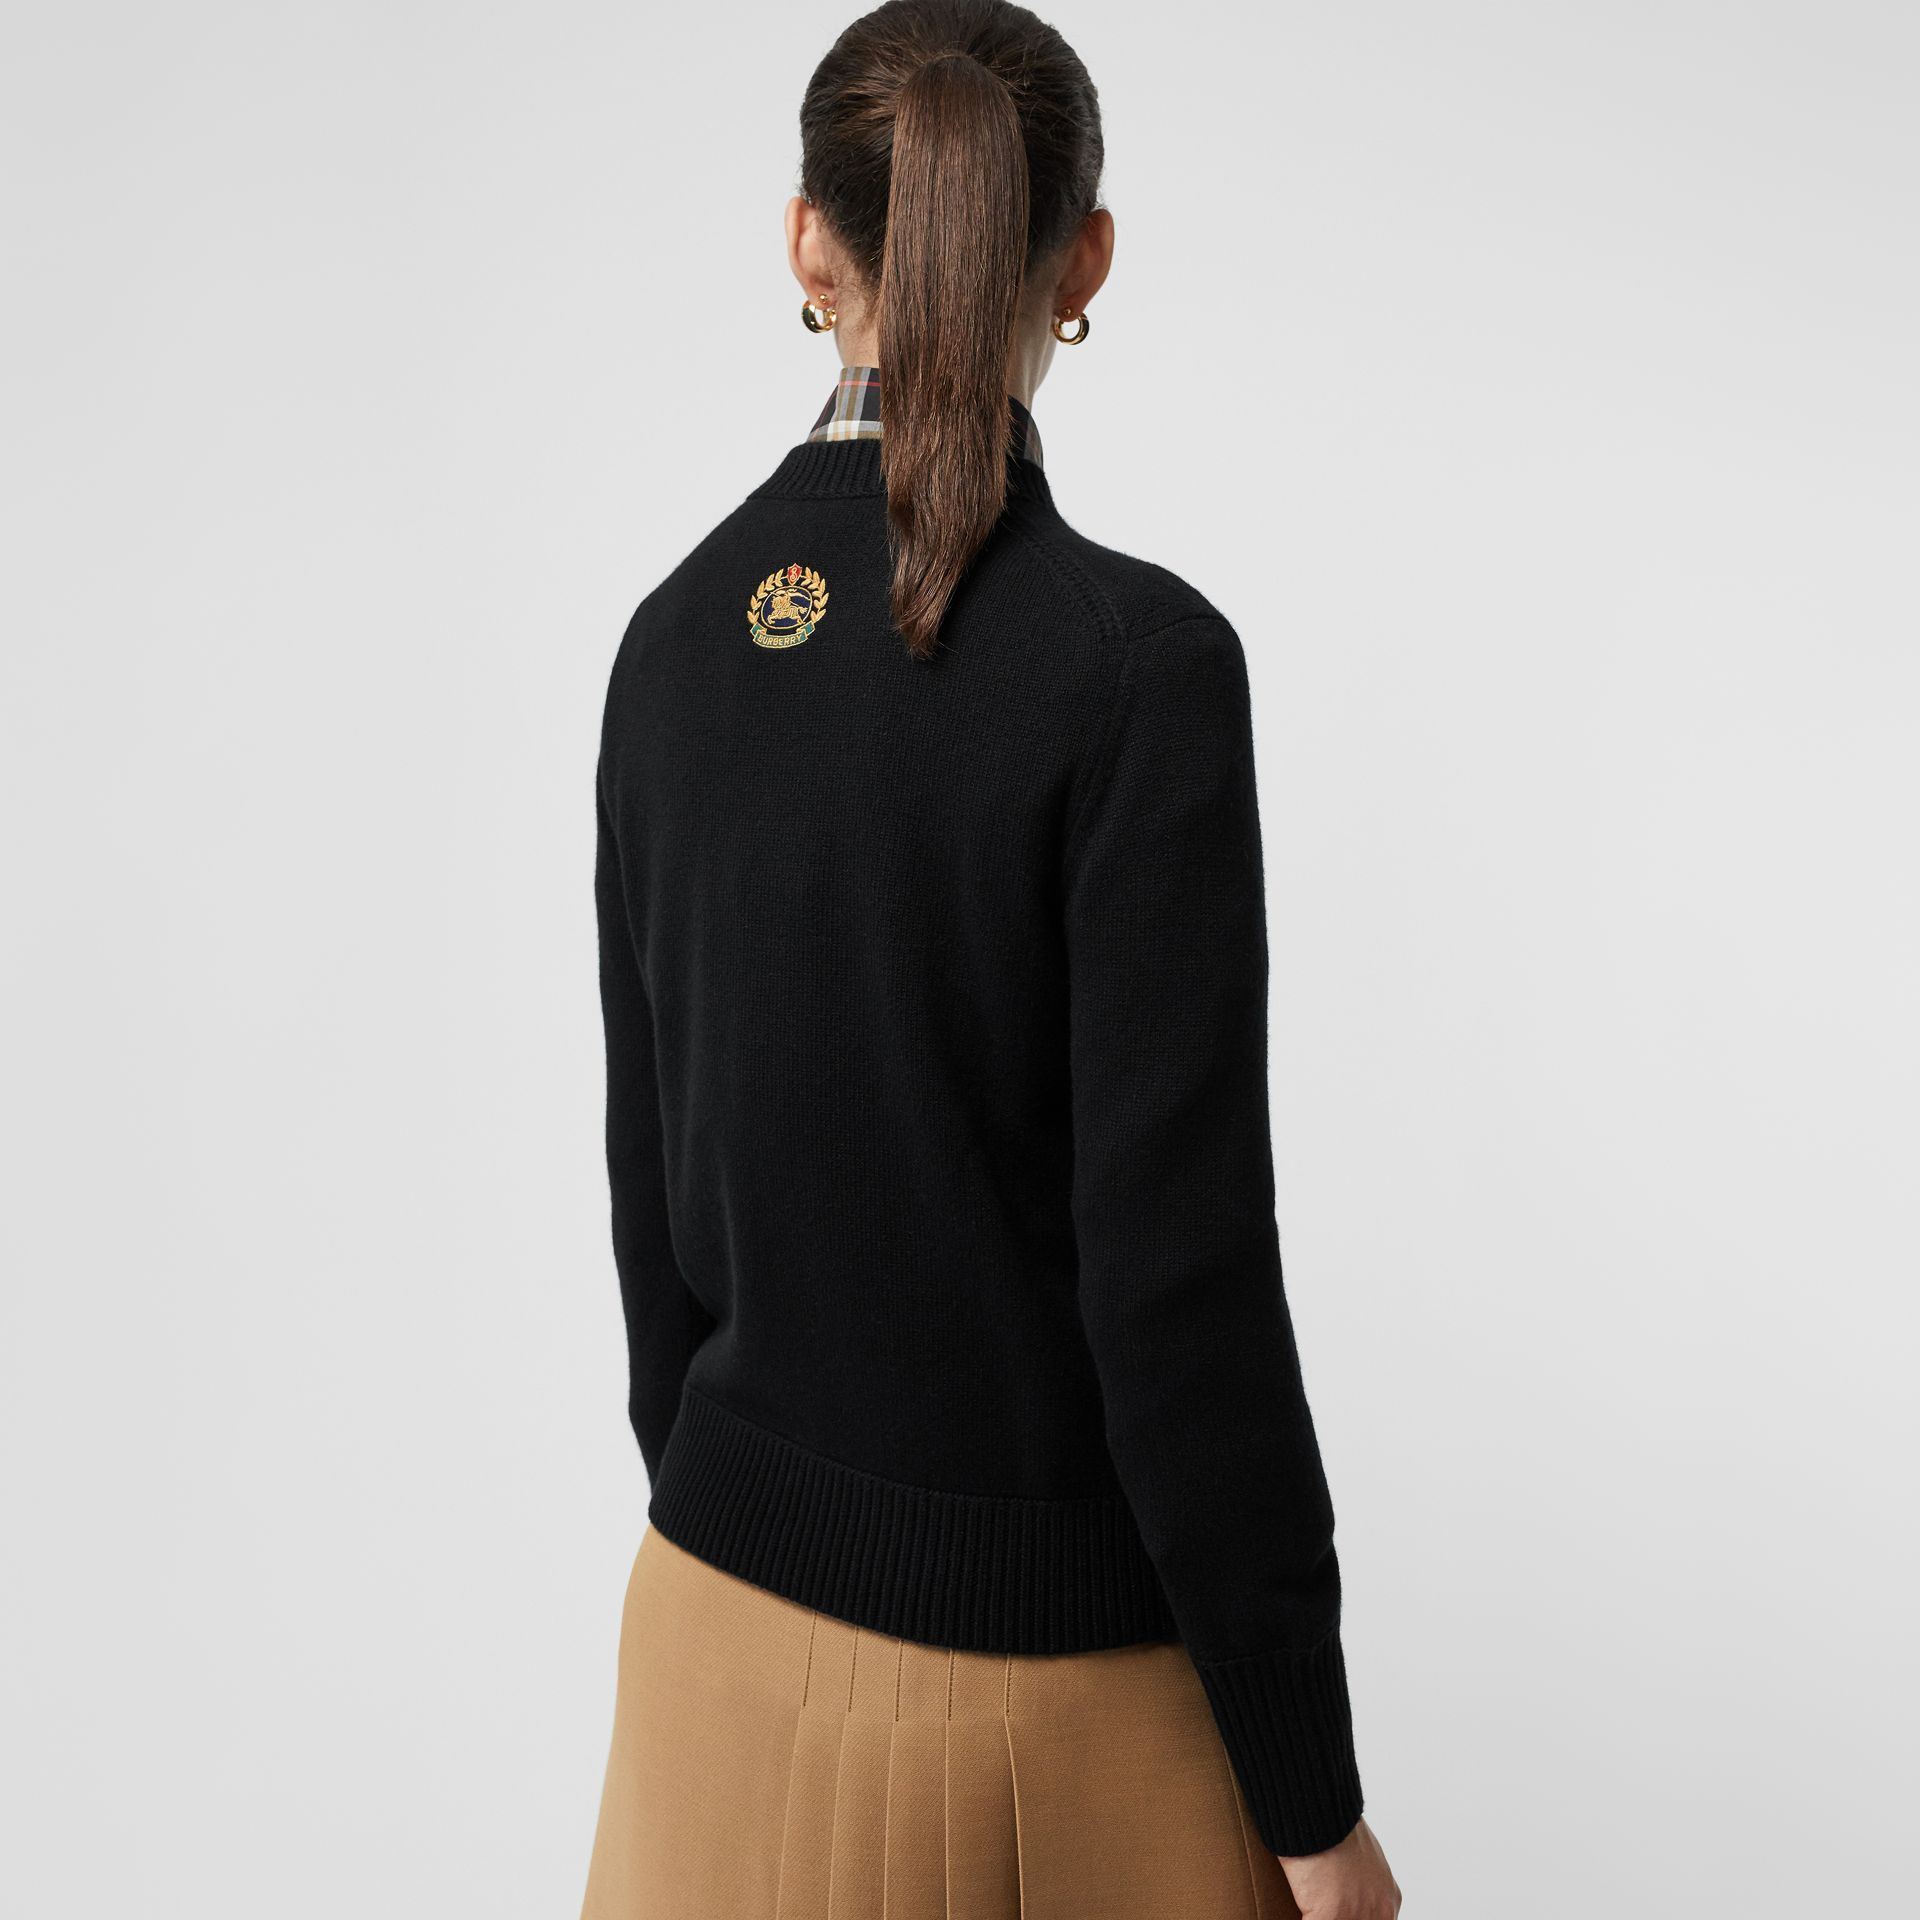 Embroidered Crest Cashmere Sweater in Black - Women | Burberry - gallery image 4